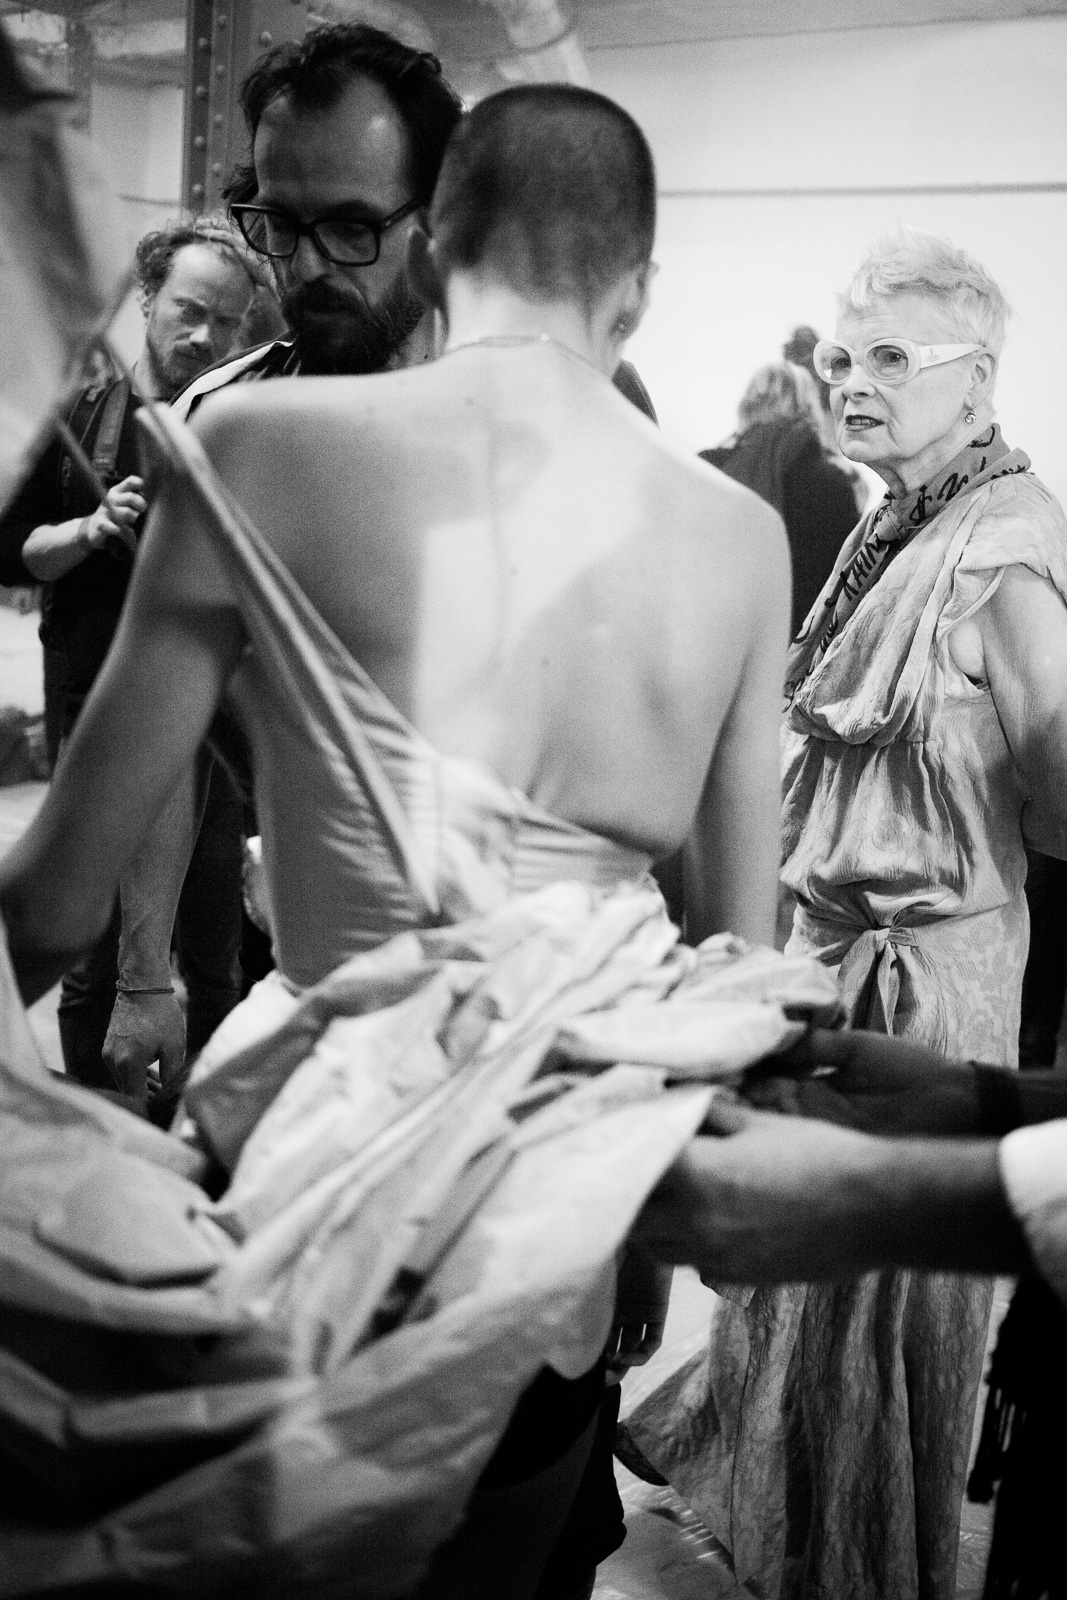 Andreas Kronthaler and Vivienne Westwood backstage before the show as part of the Paris Fashion Week Womenswear Fall/Winter 2015/16 on March 7, 2015 in Paris, France.